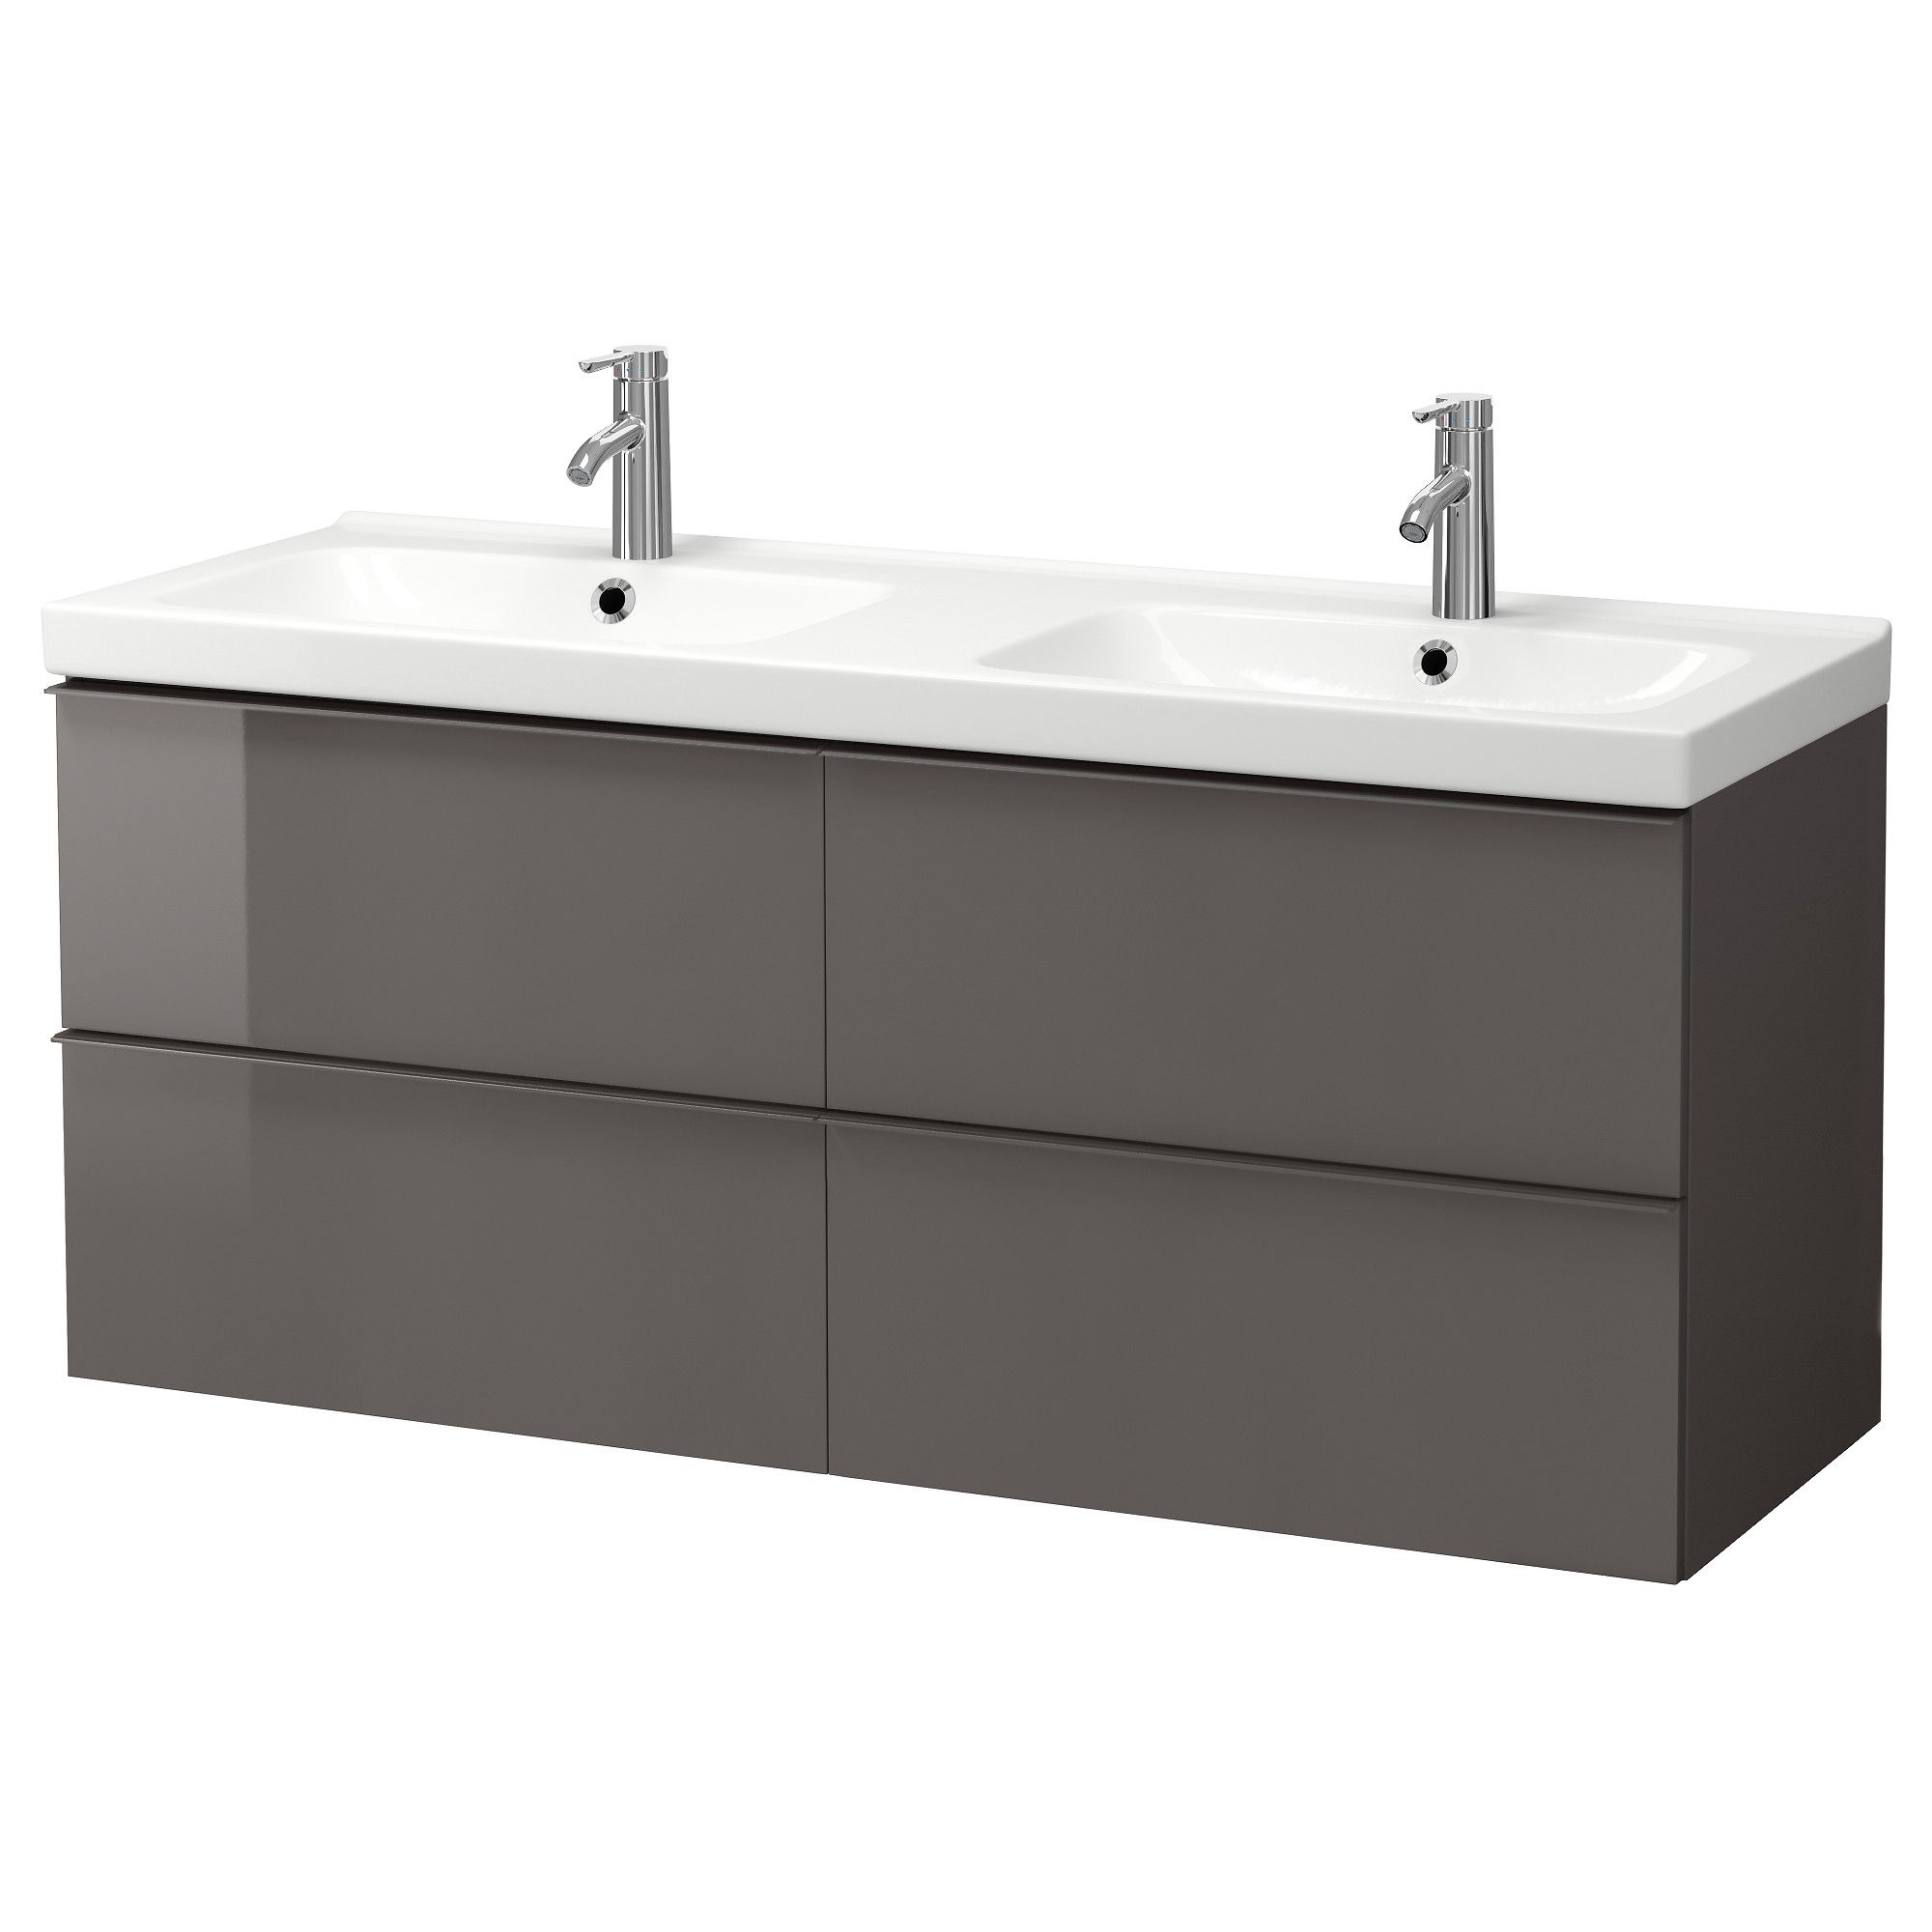 Strange Furniture And Home Furnishings In 2019 Products Bathroom Home Interior And Landscaping Ponolsignezvosmurscom